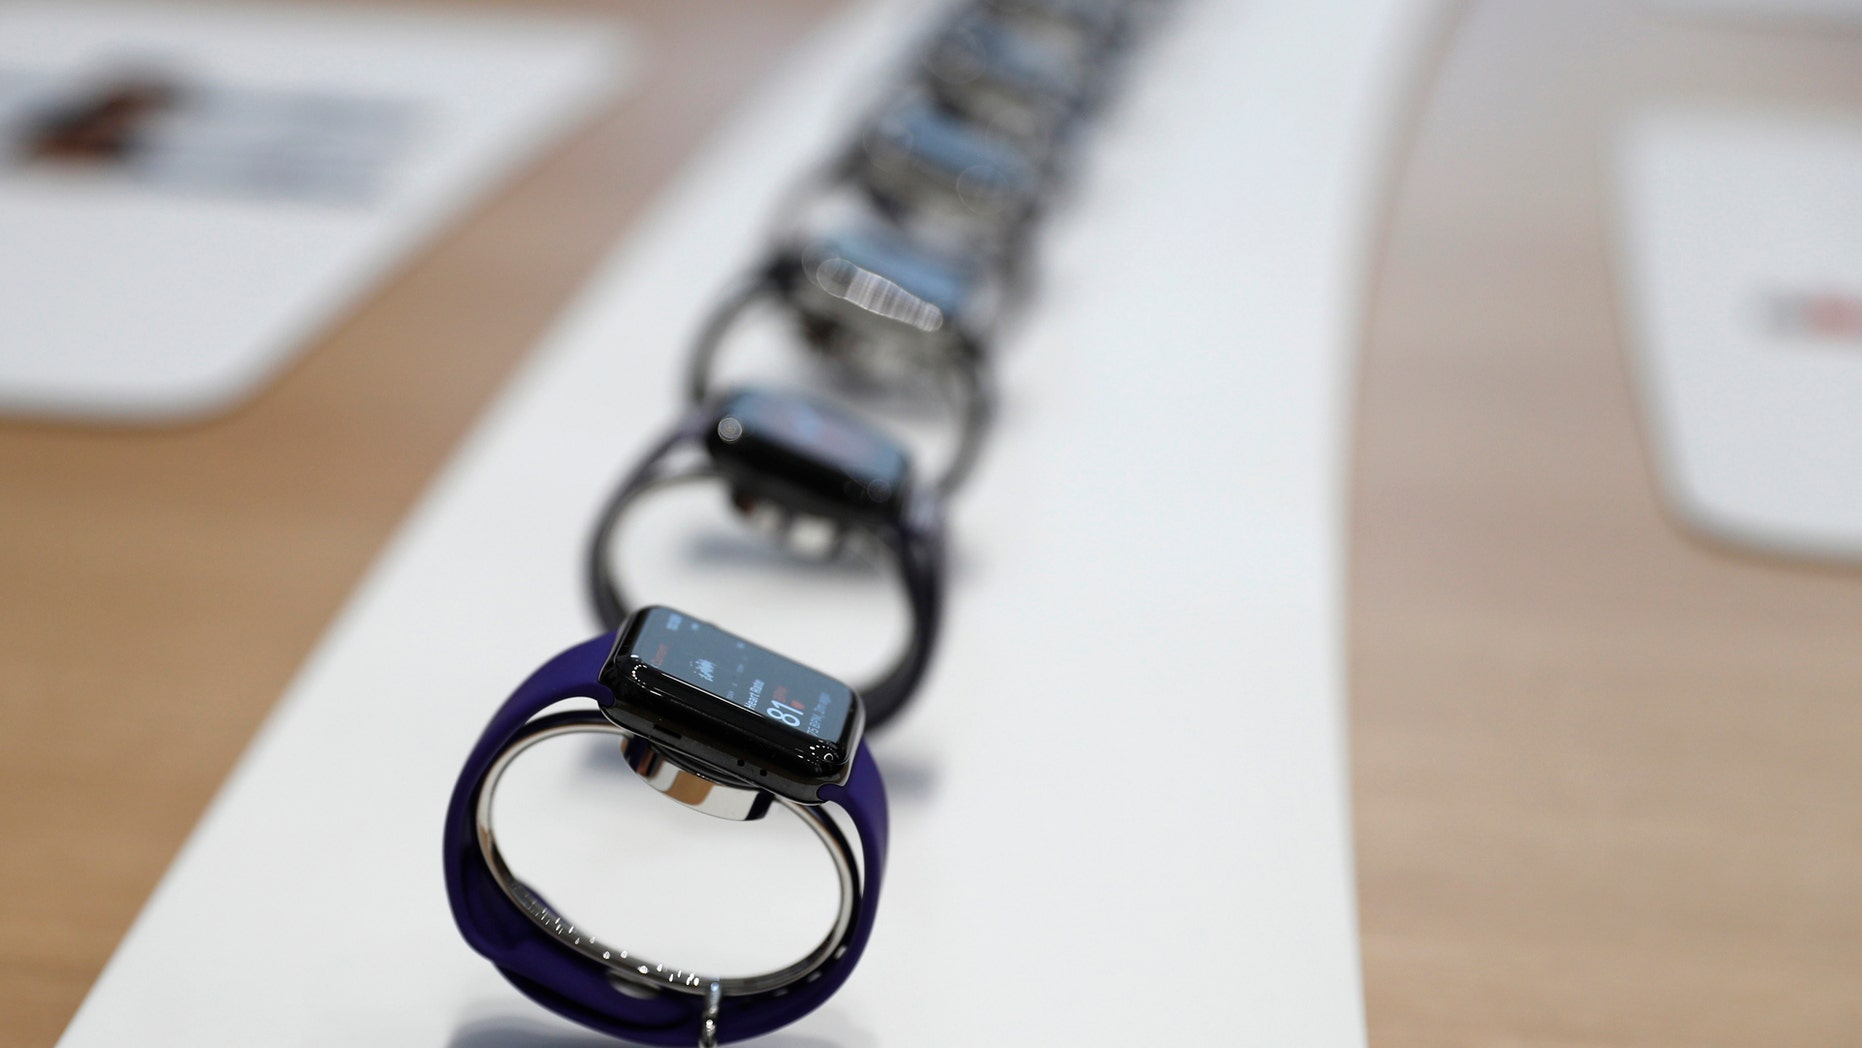 Apple Watches are displayed during a launch event in Cupertino, California, U.S. September 12, 2017. (REUTERS/Stephen Lam)